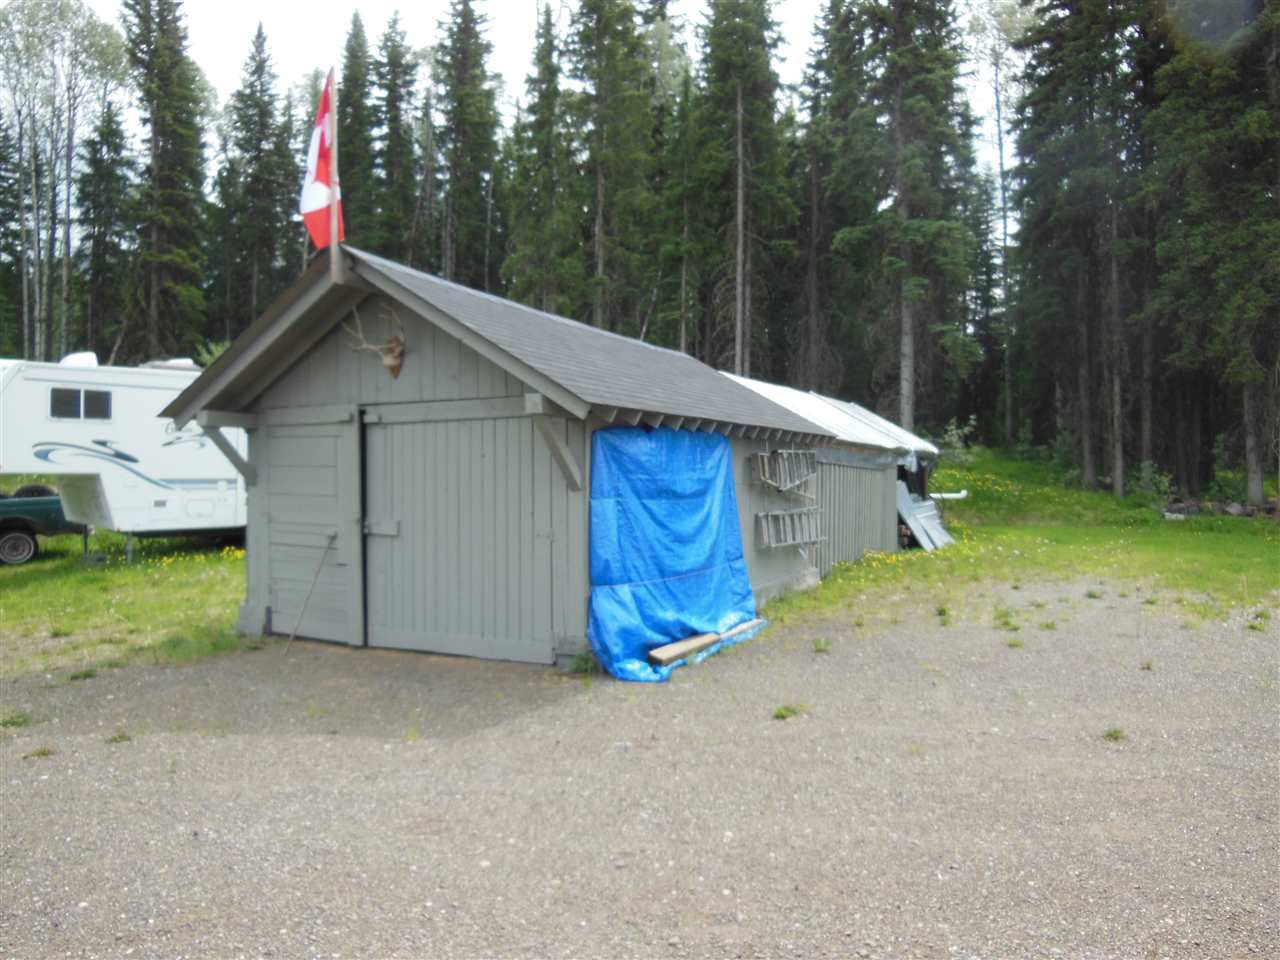 Photo 23: Photos: 3535 WESTWICK PIT Road: 150 Mile House House for sale (Williams Lake (Zone 27))  : MLS®# R2488772